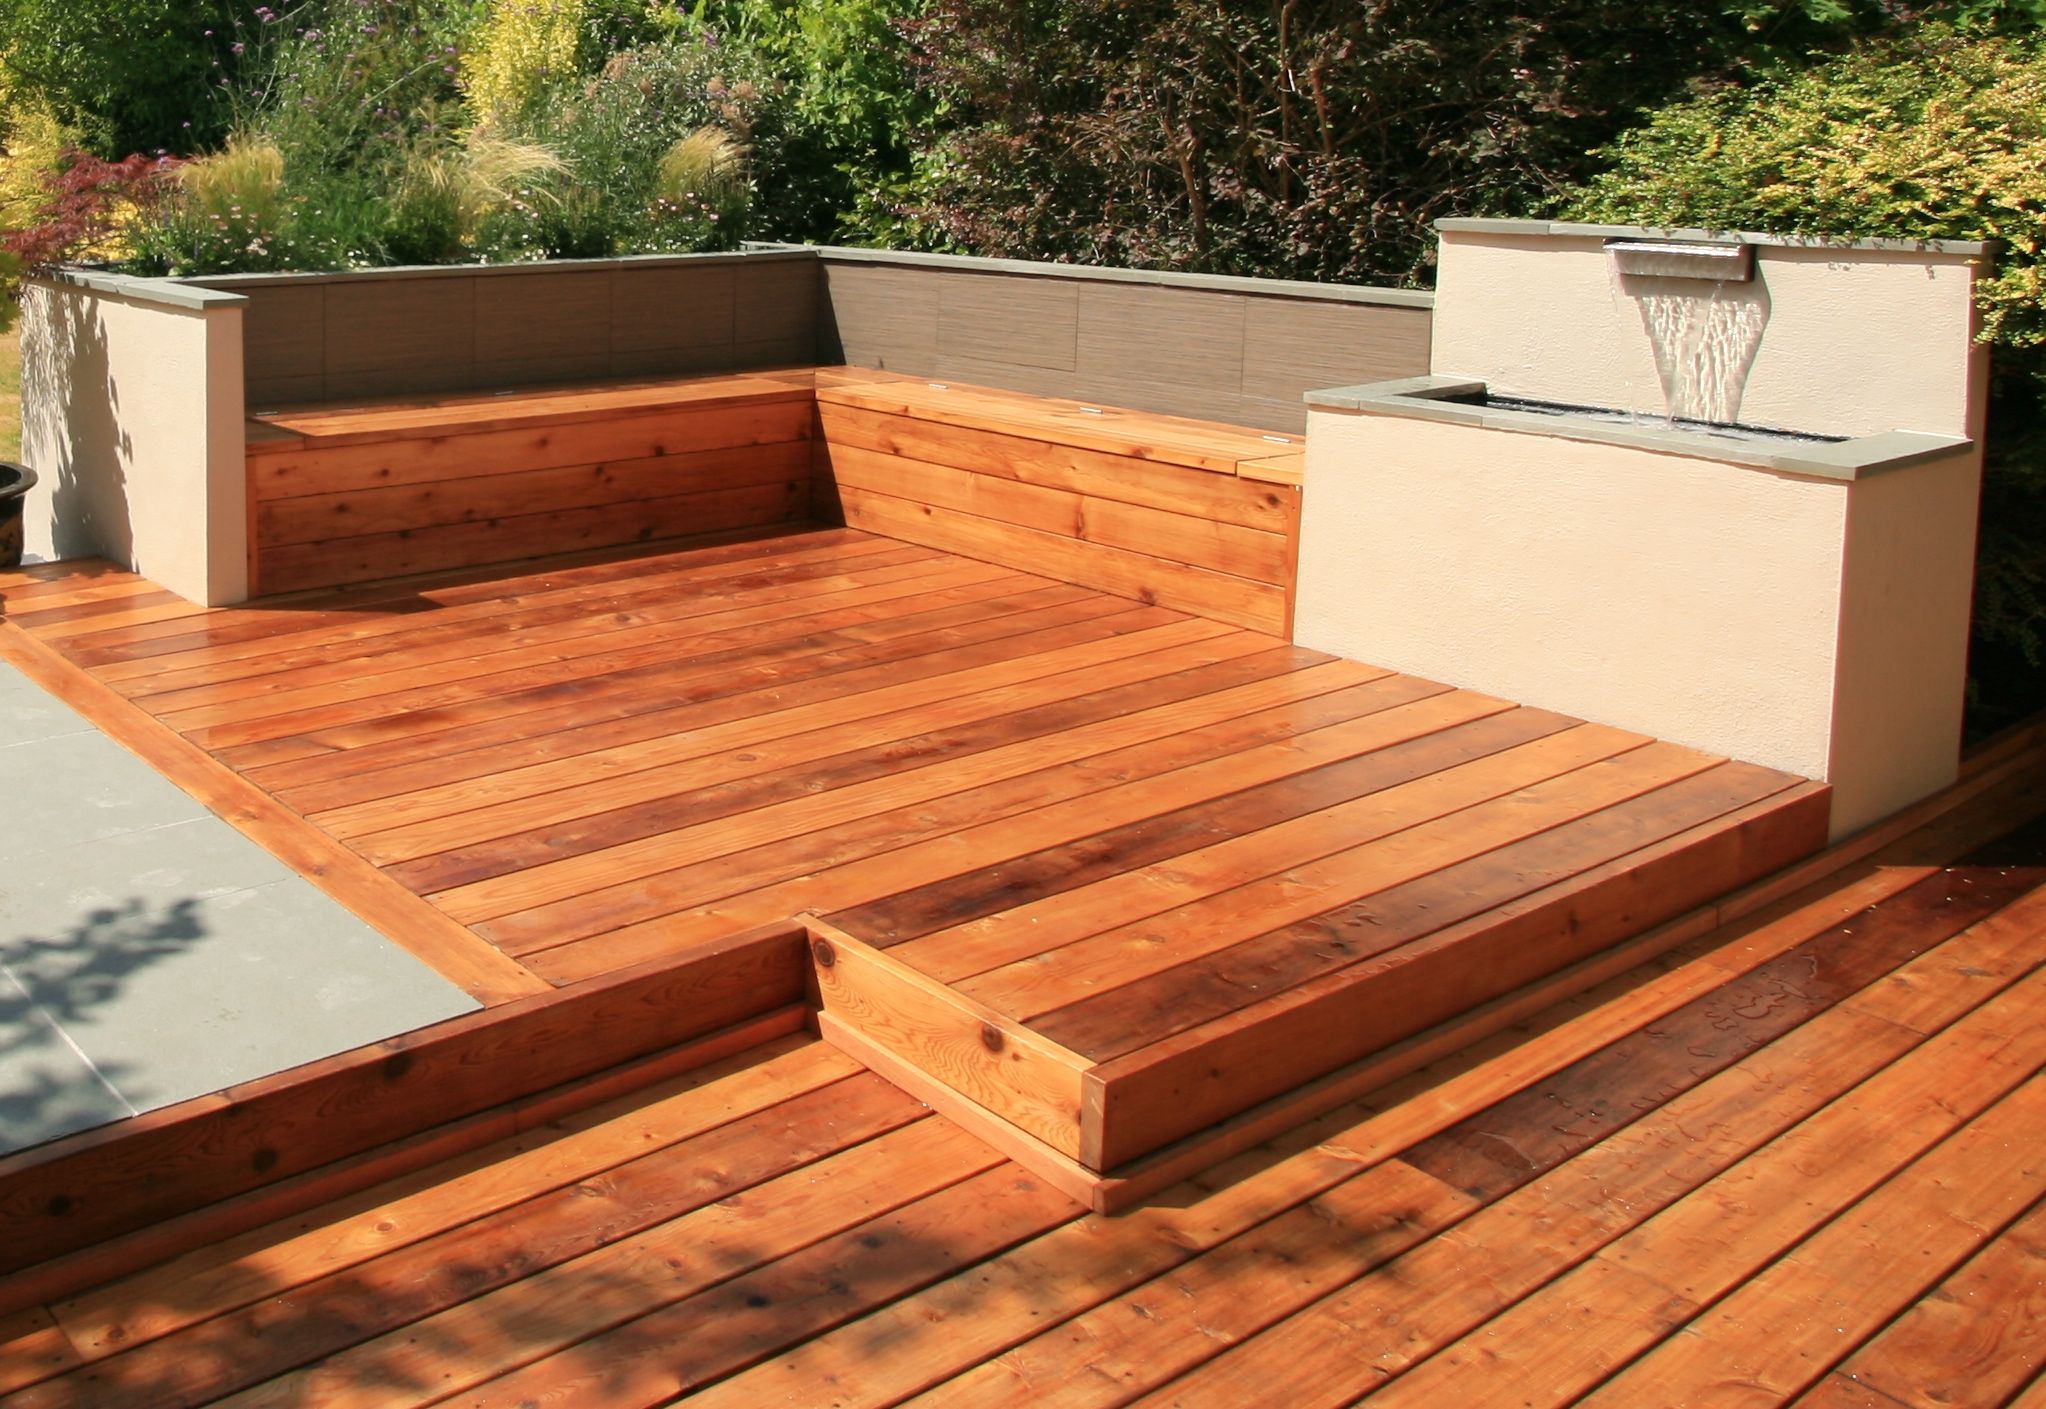 How to Prevent Wood Decking From Becoming Slippery